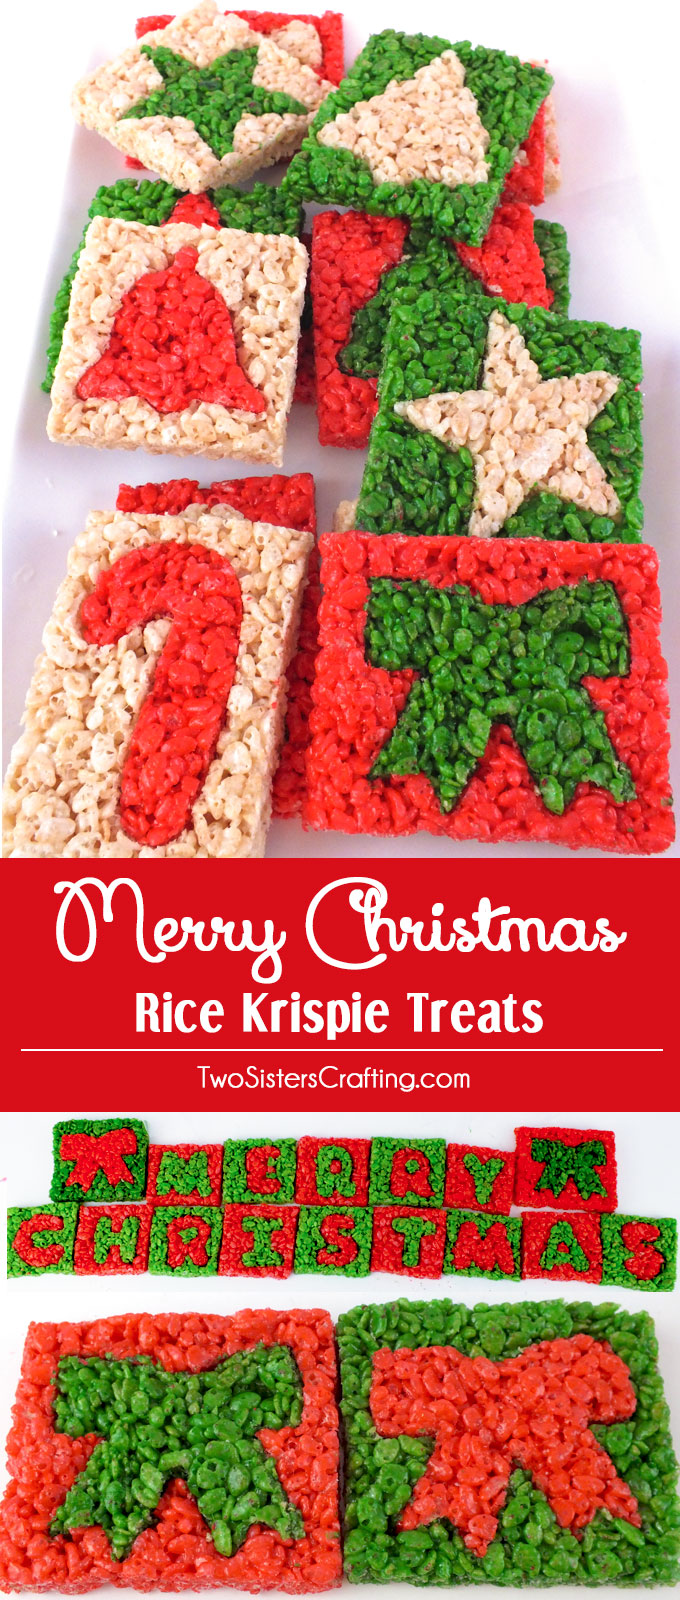 Christmas Colored Rice Crispy Treats With Merry Krispie Two Sisters